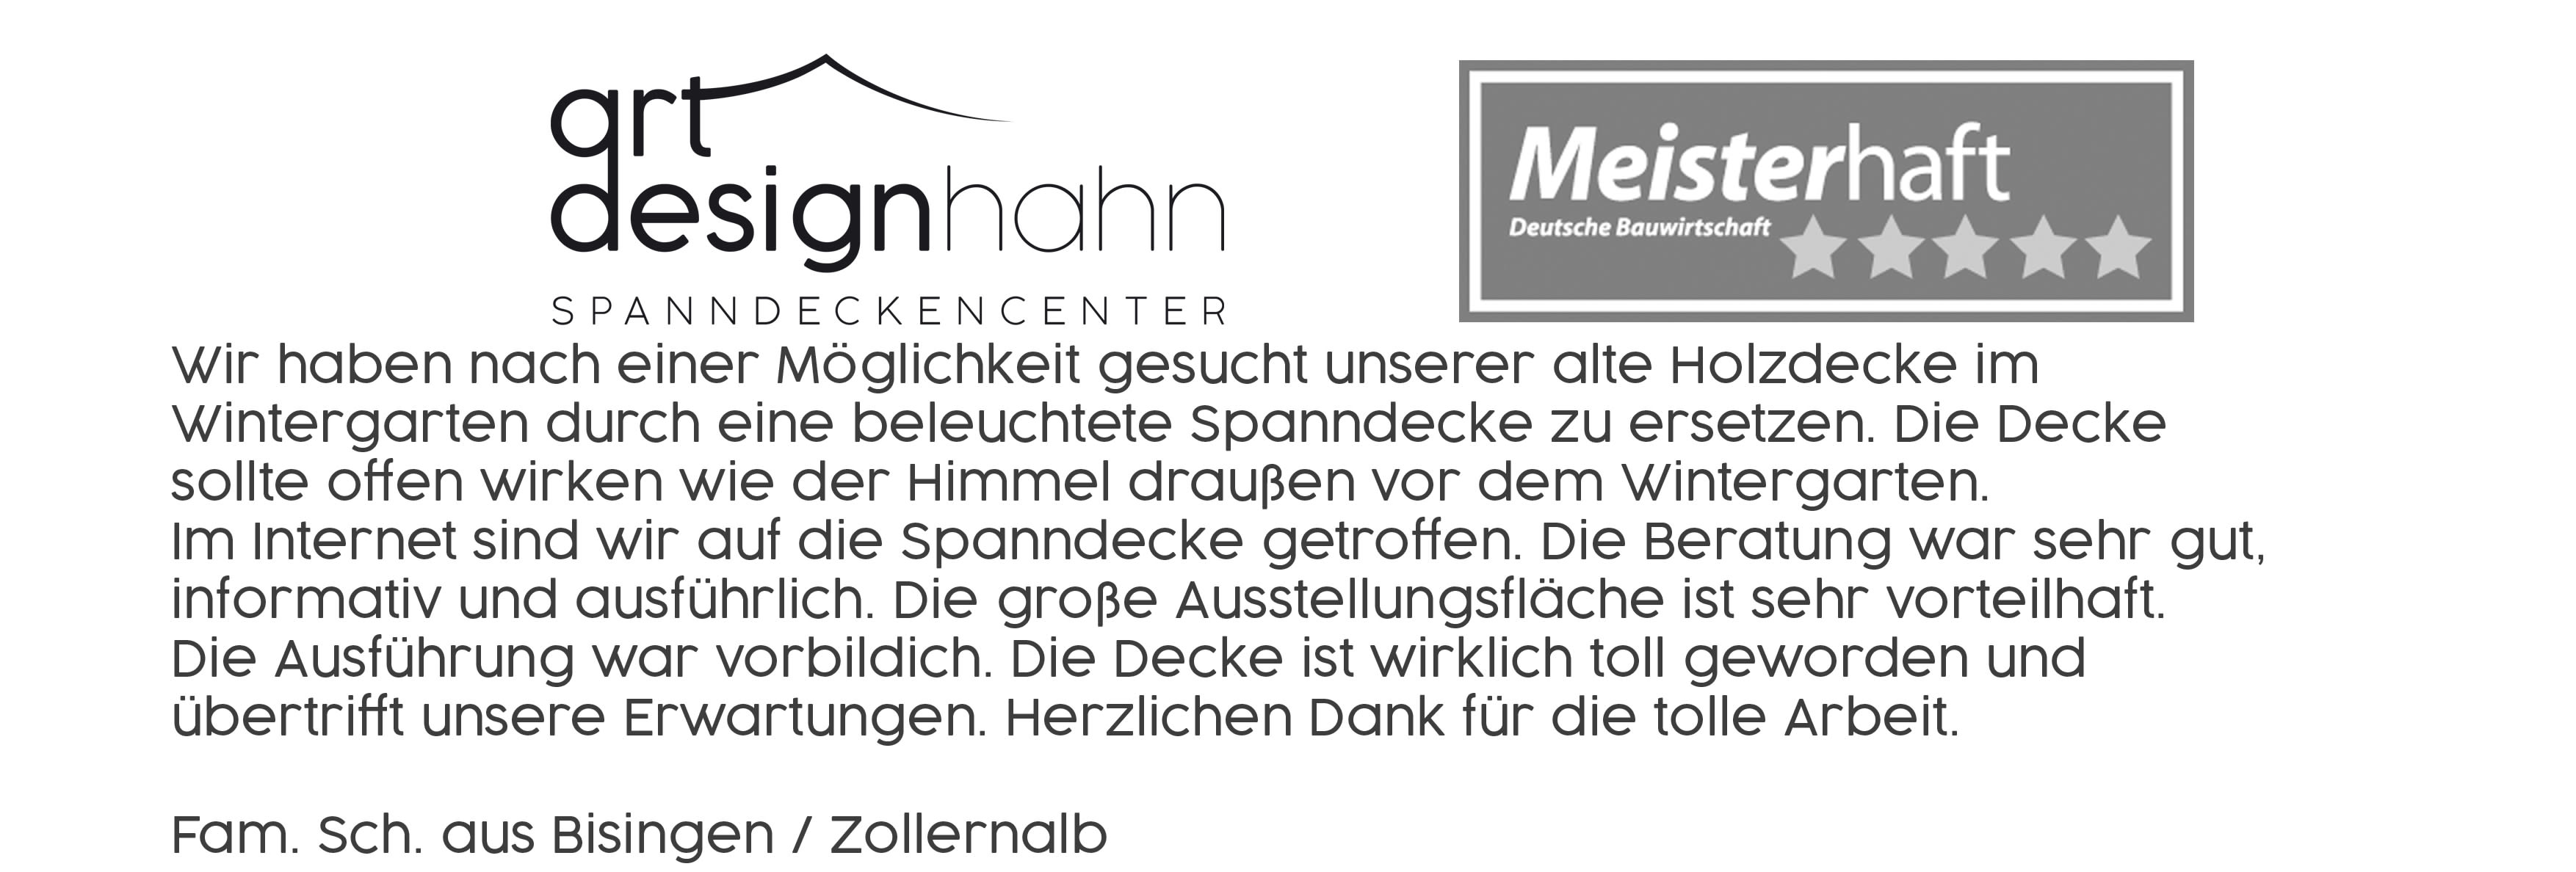 Art Design Hahn Meisterhafte Rezension 53